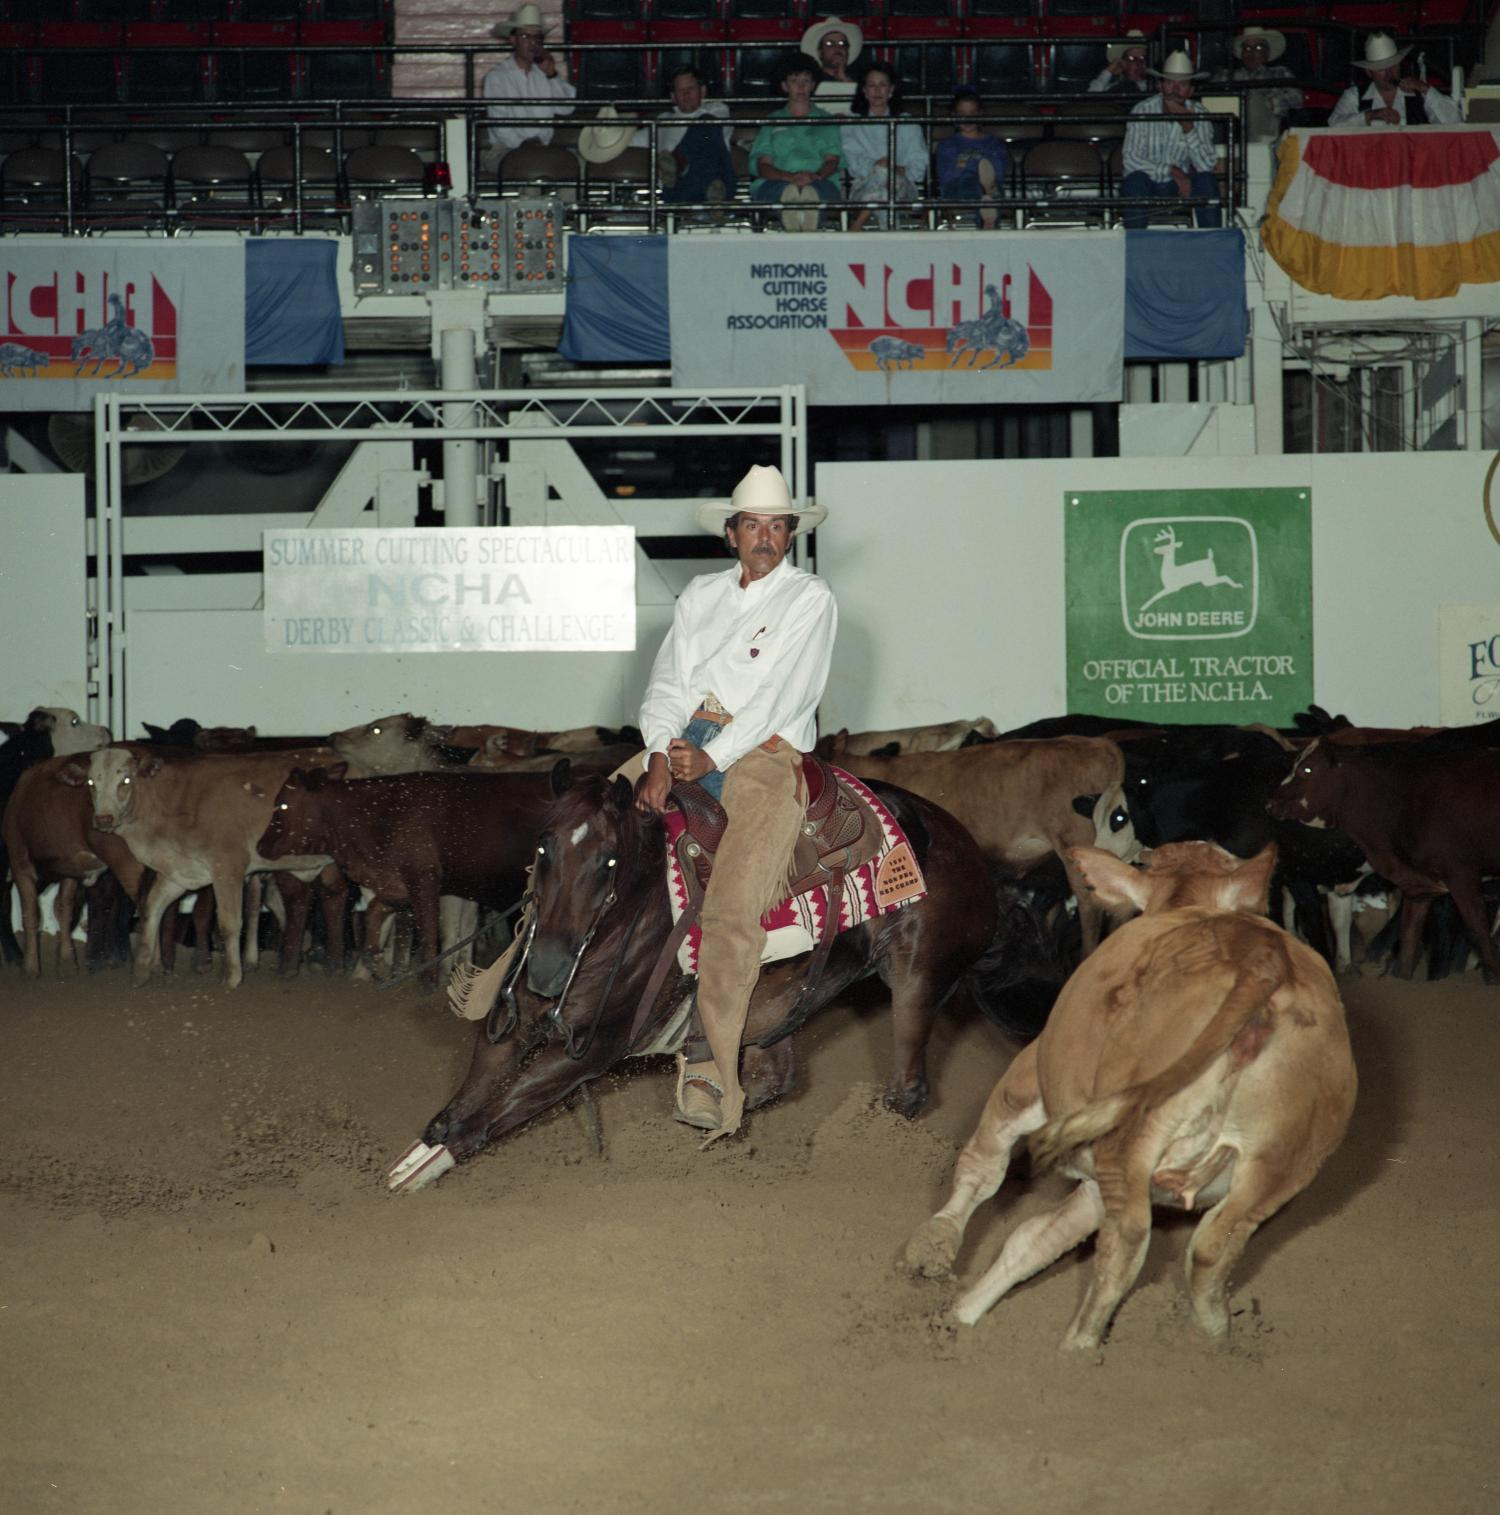 Cutting Horse Competition: Image 1991_D-38_04                                                                                                      [Sequence #]: 1 of 1